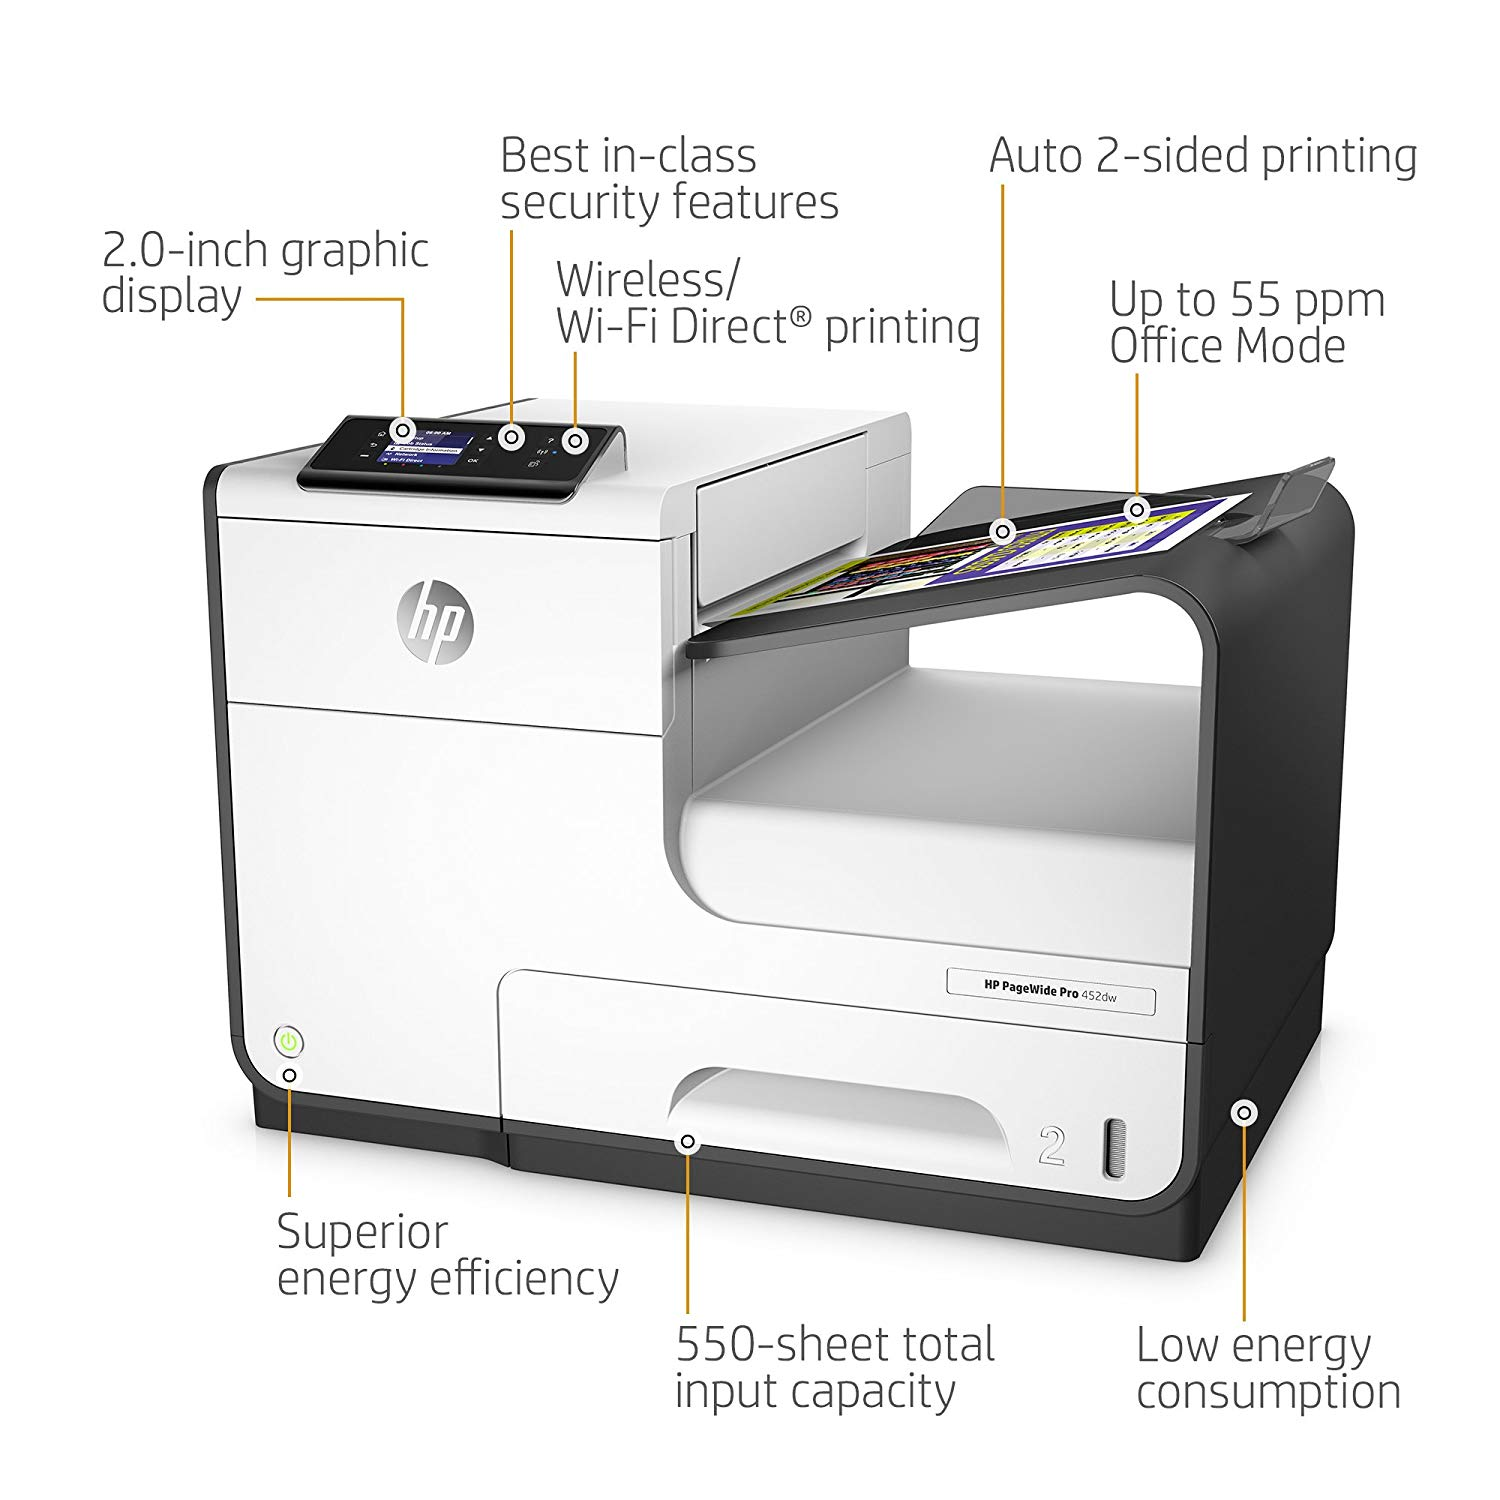 Product | HP PageWide Pro 452dw - printer - color - page wide array